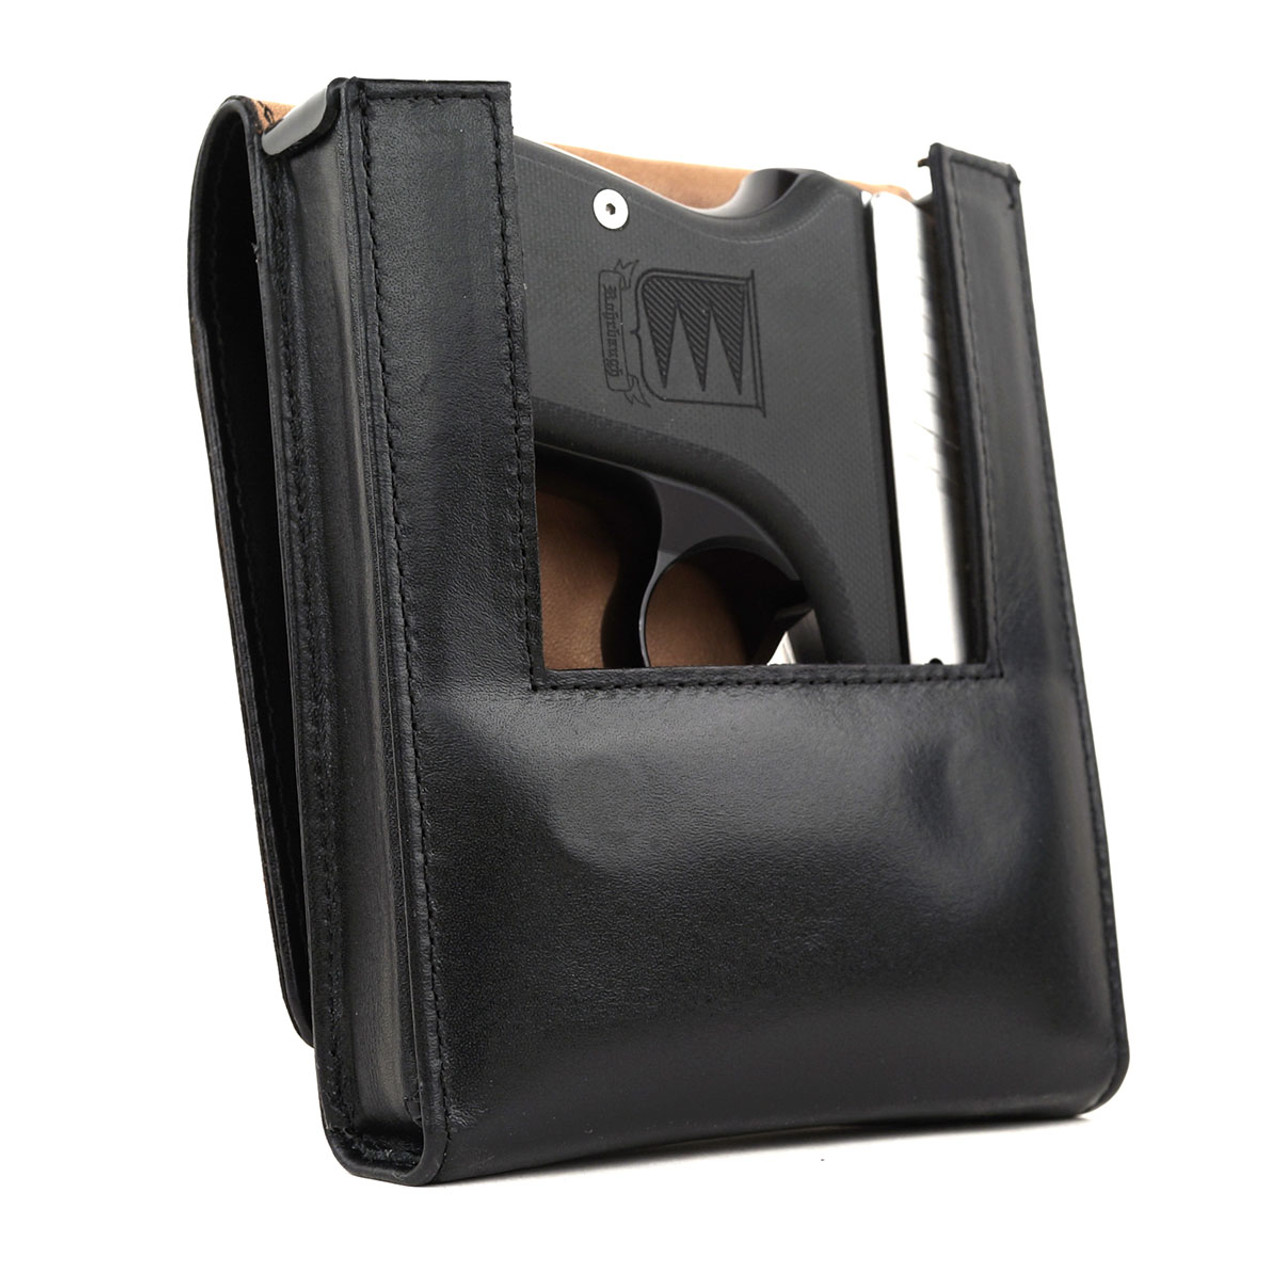 Remington RM380 Belt Clip Holster